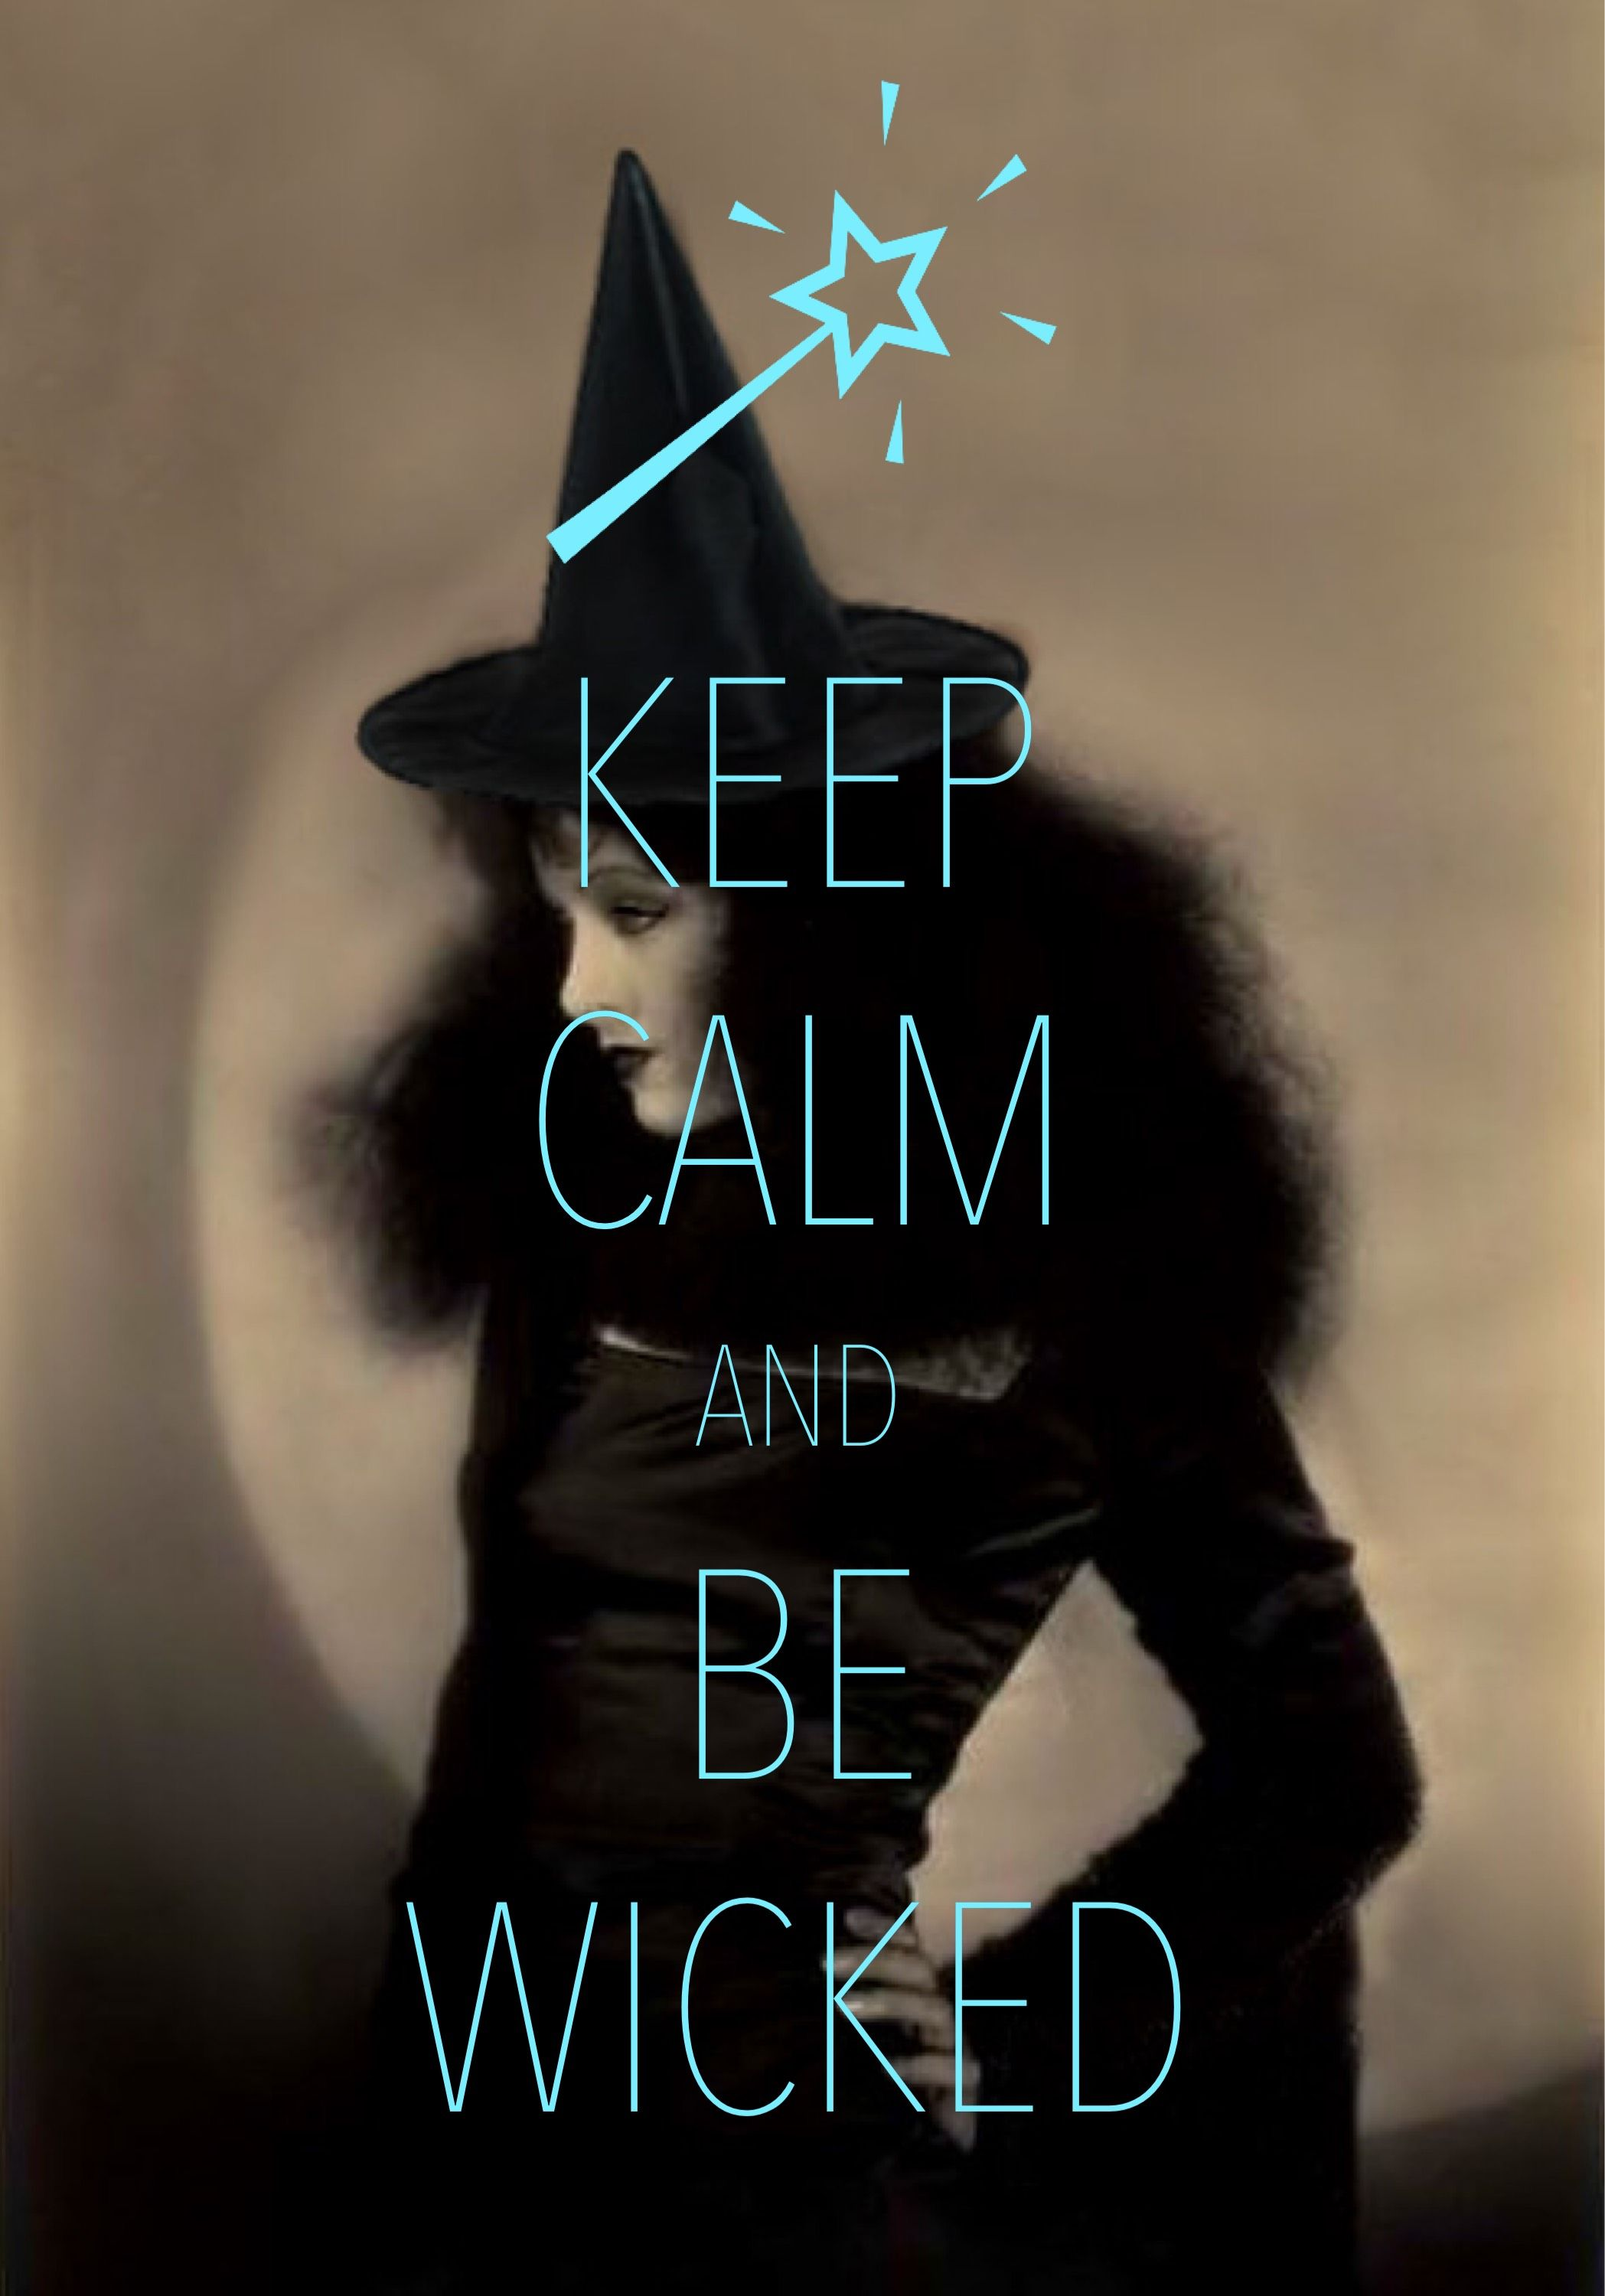 Good Keep Calm And Be Wicked / Created With Keep Calm And Carry On For IOS #